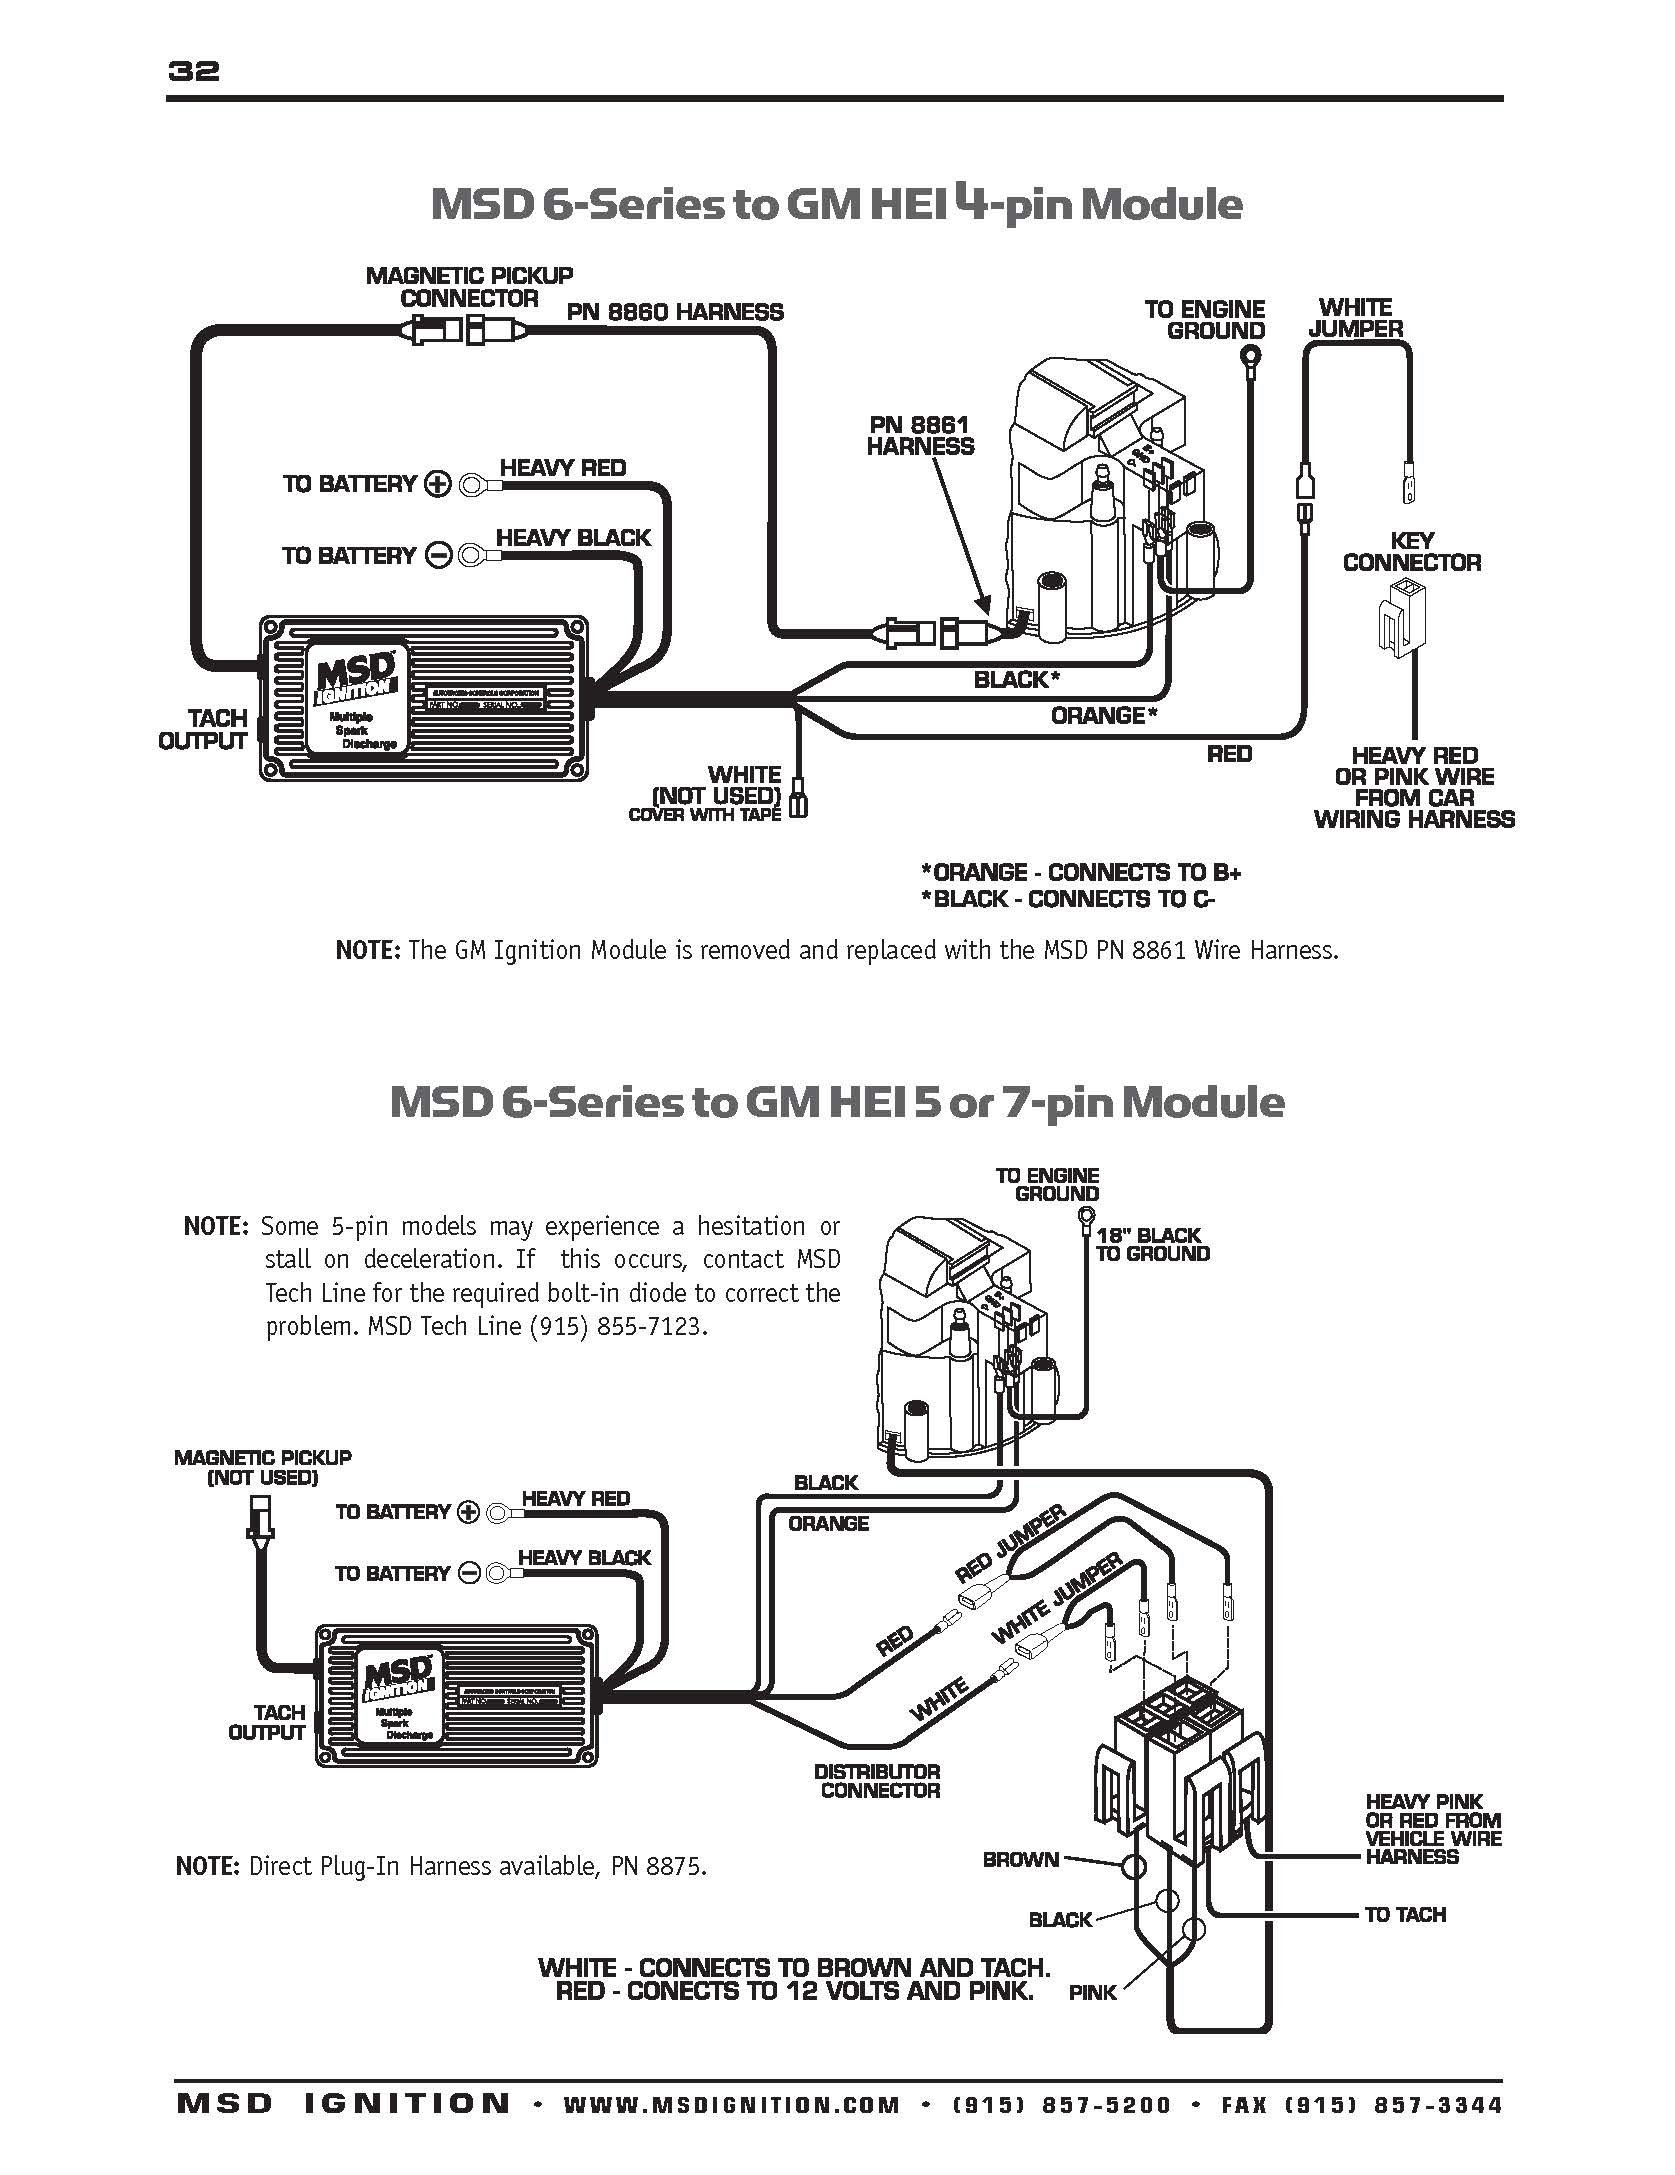 Mallory Ignition Wiring Diagram 75 | Manual E-Books - Mallory Ignition Wiring Diagram